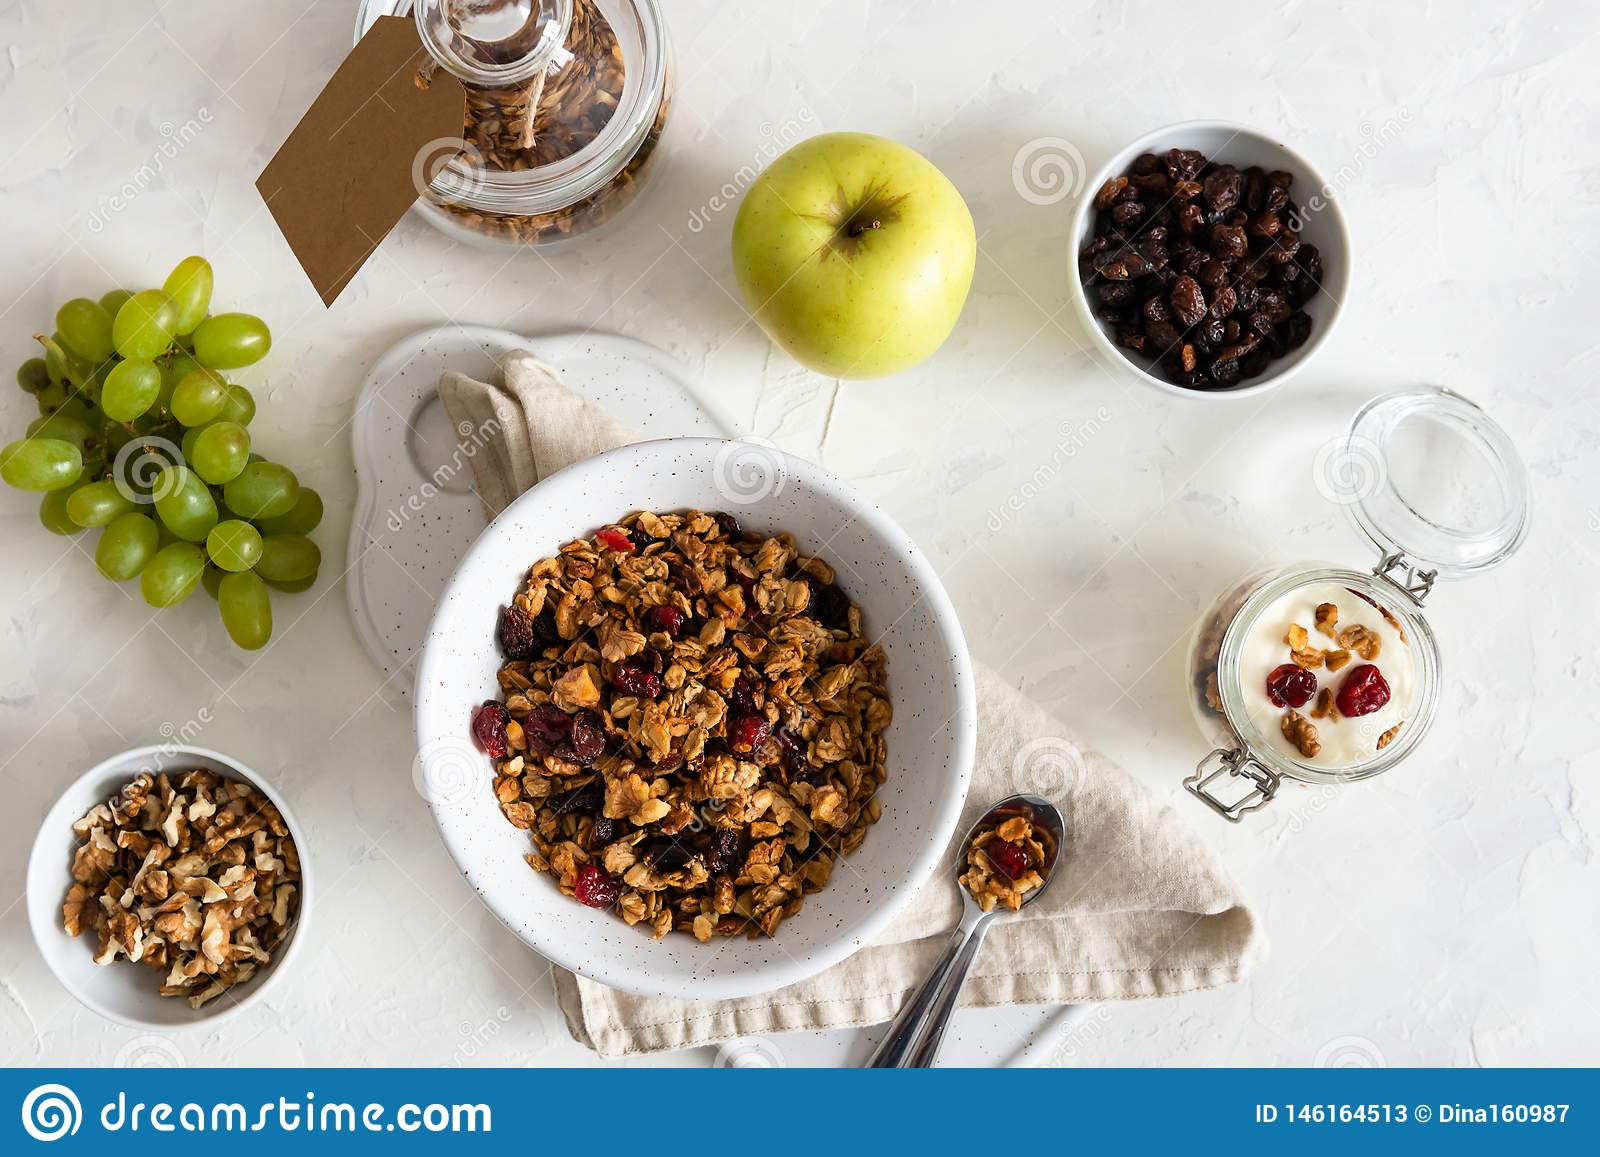 Bowl of homemade granola with nuts and fruits on white linen background. Top view. Healthy breakfast, dieting, nutrition